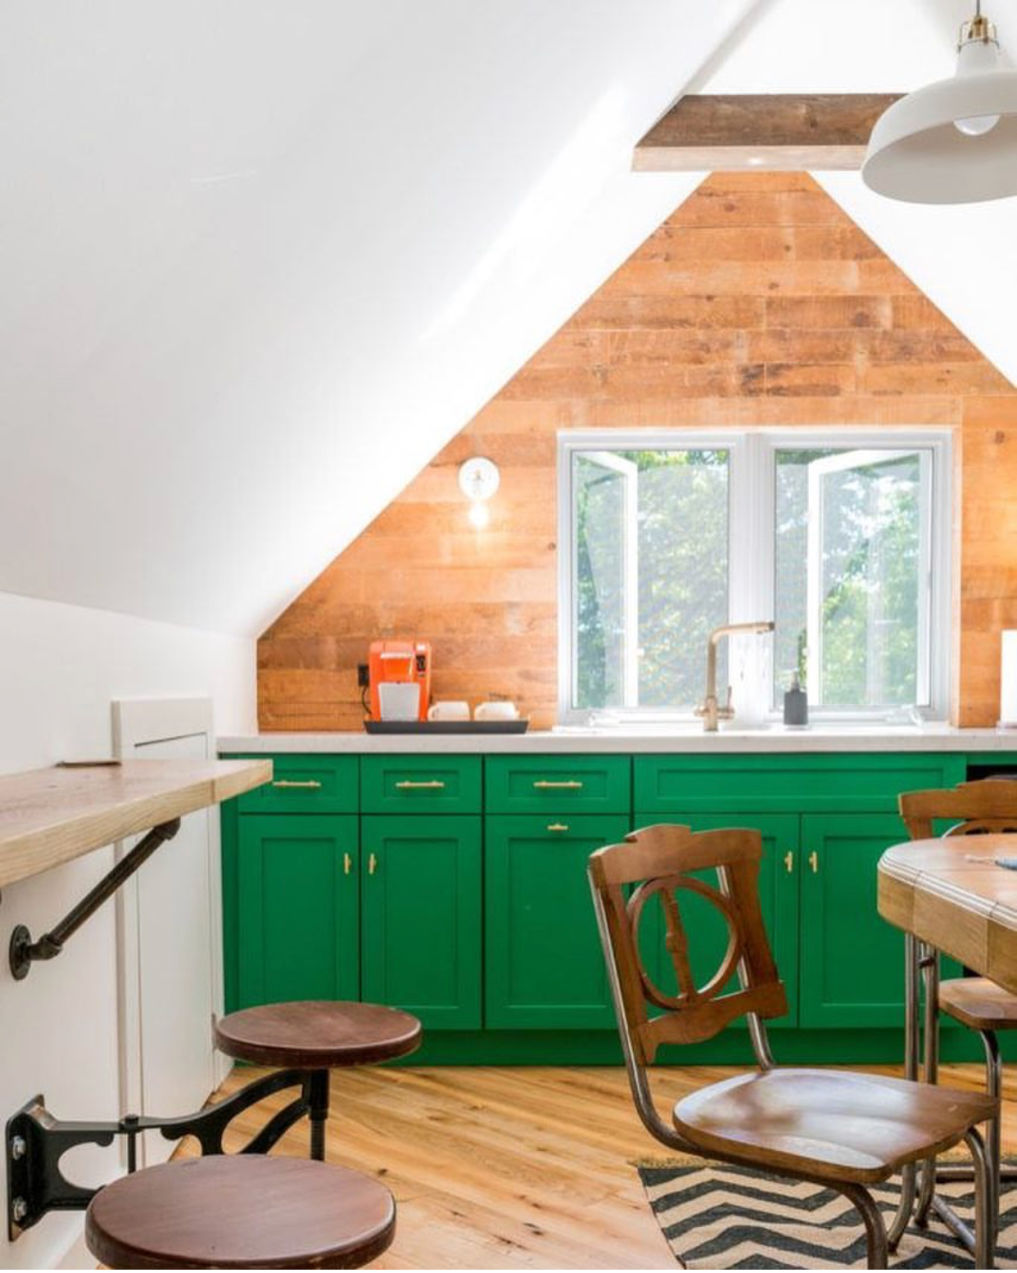 Kitchenette with green cabinets and wood shiplap #shiplap #woodwalls #atticdecor #attickitchen #greenkitchen #greenpaint #eclecticdecor